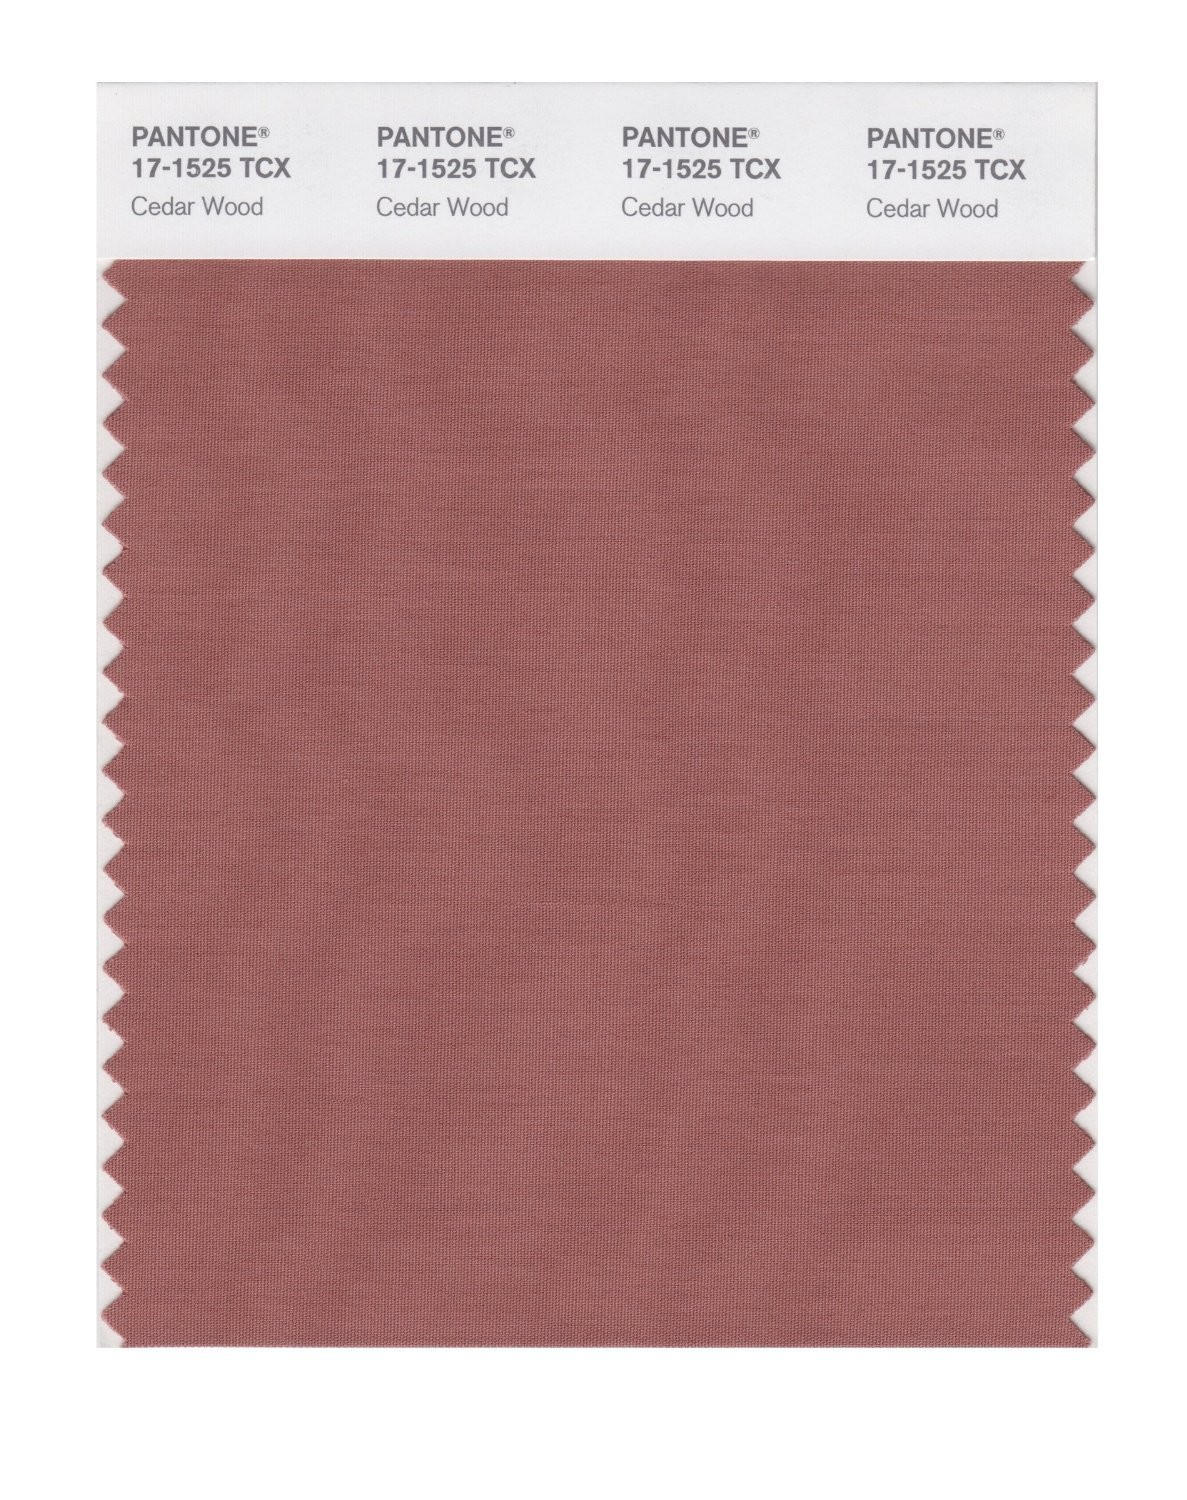 Pantone 17-1525 TCX Swatch Card Cedar Wood